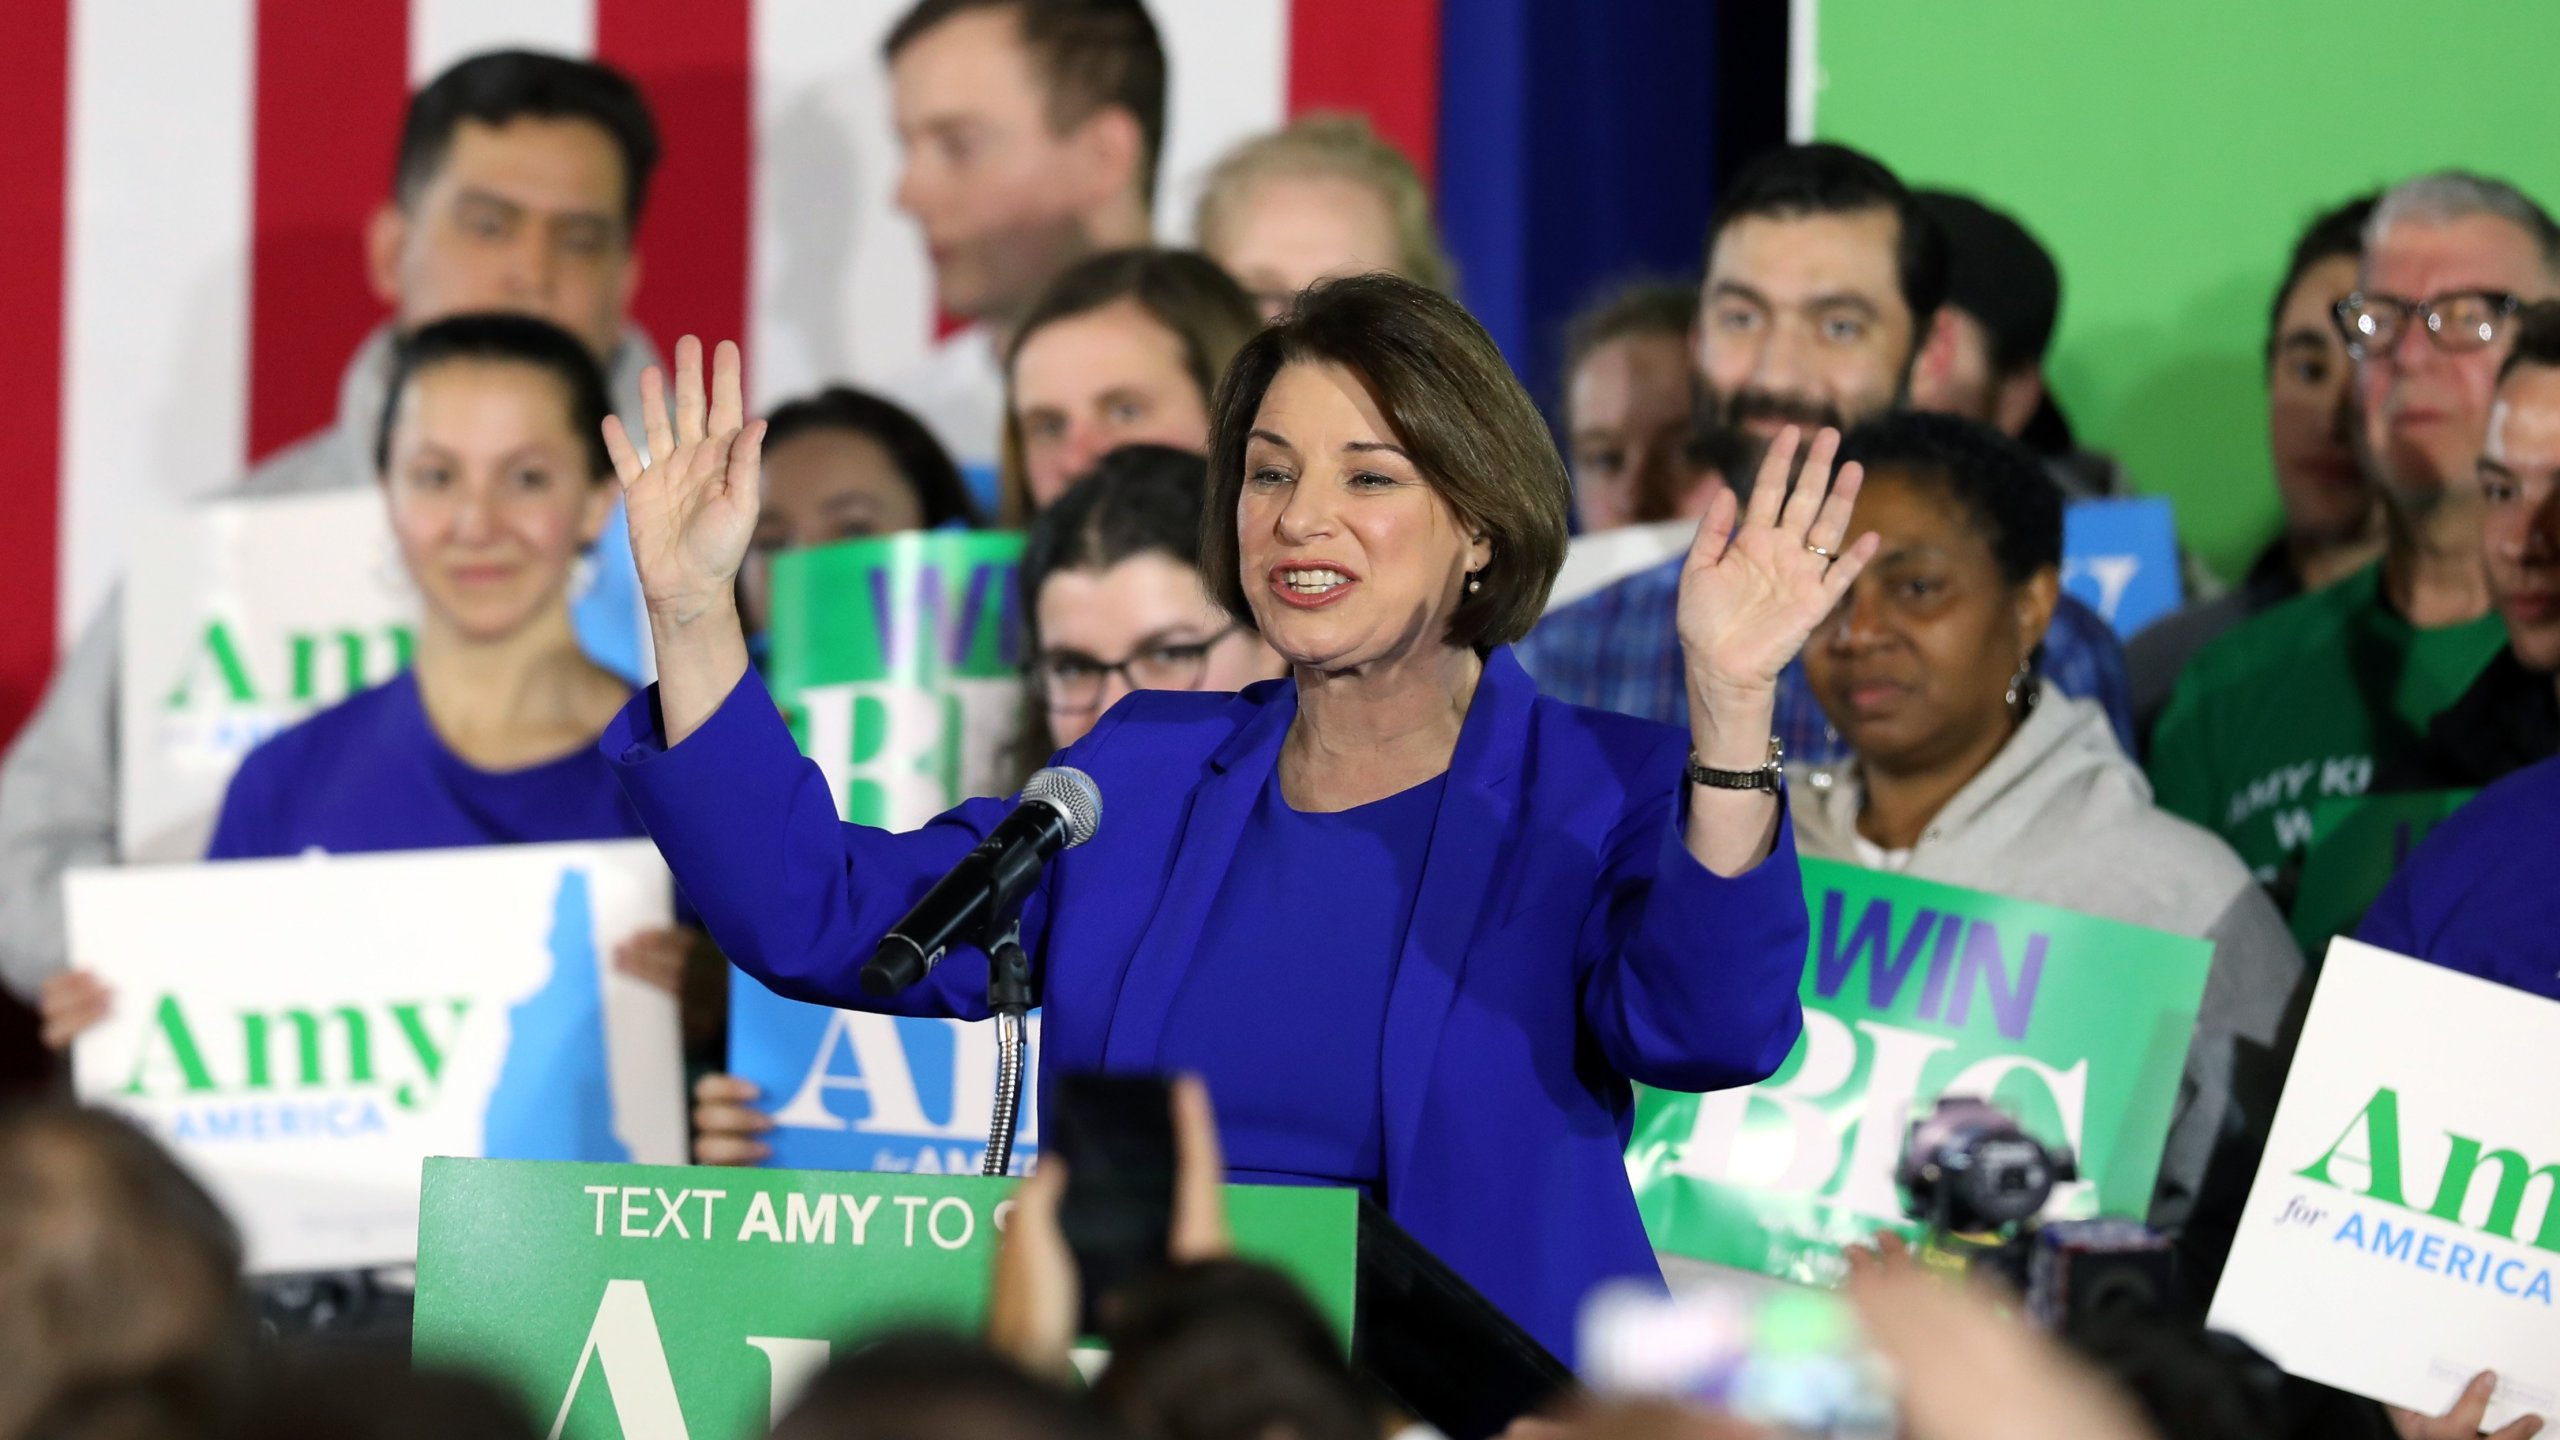 Democratic presidential candidate Sen. Amy Klobuchar speaks on stage during a primary night event on Feb. 11, 2020, in Concord, New Hampshire. (Credit: Scott Eisen/Getty Images)